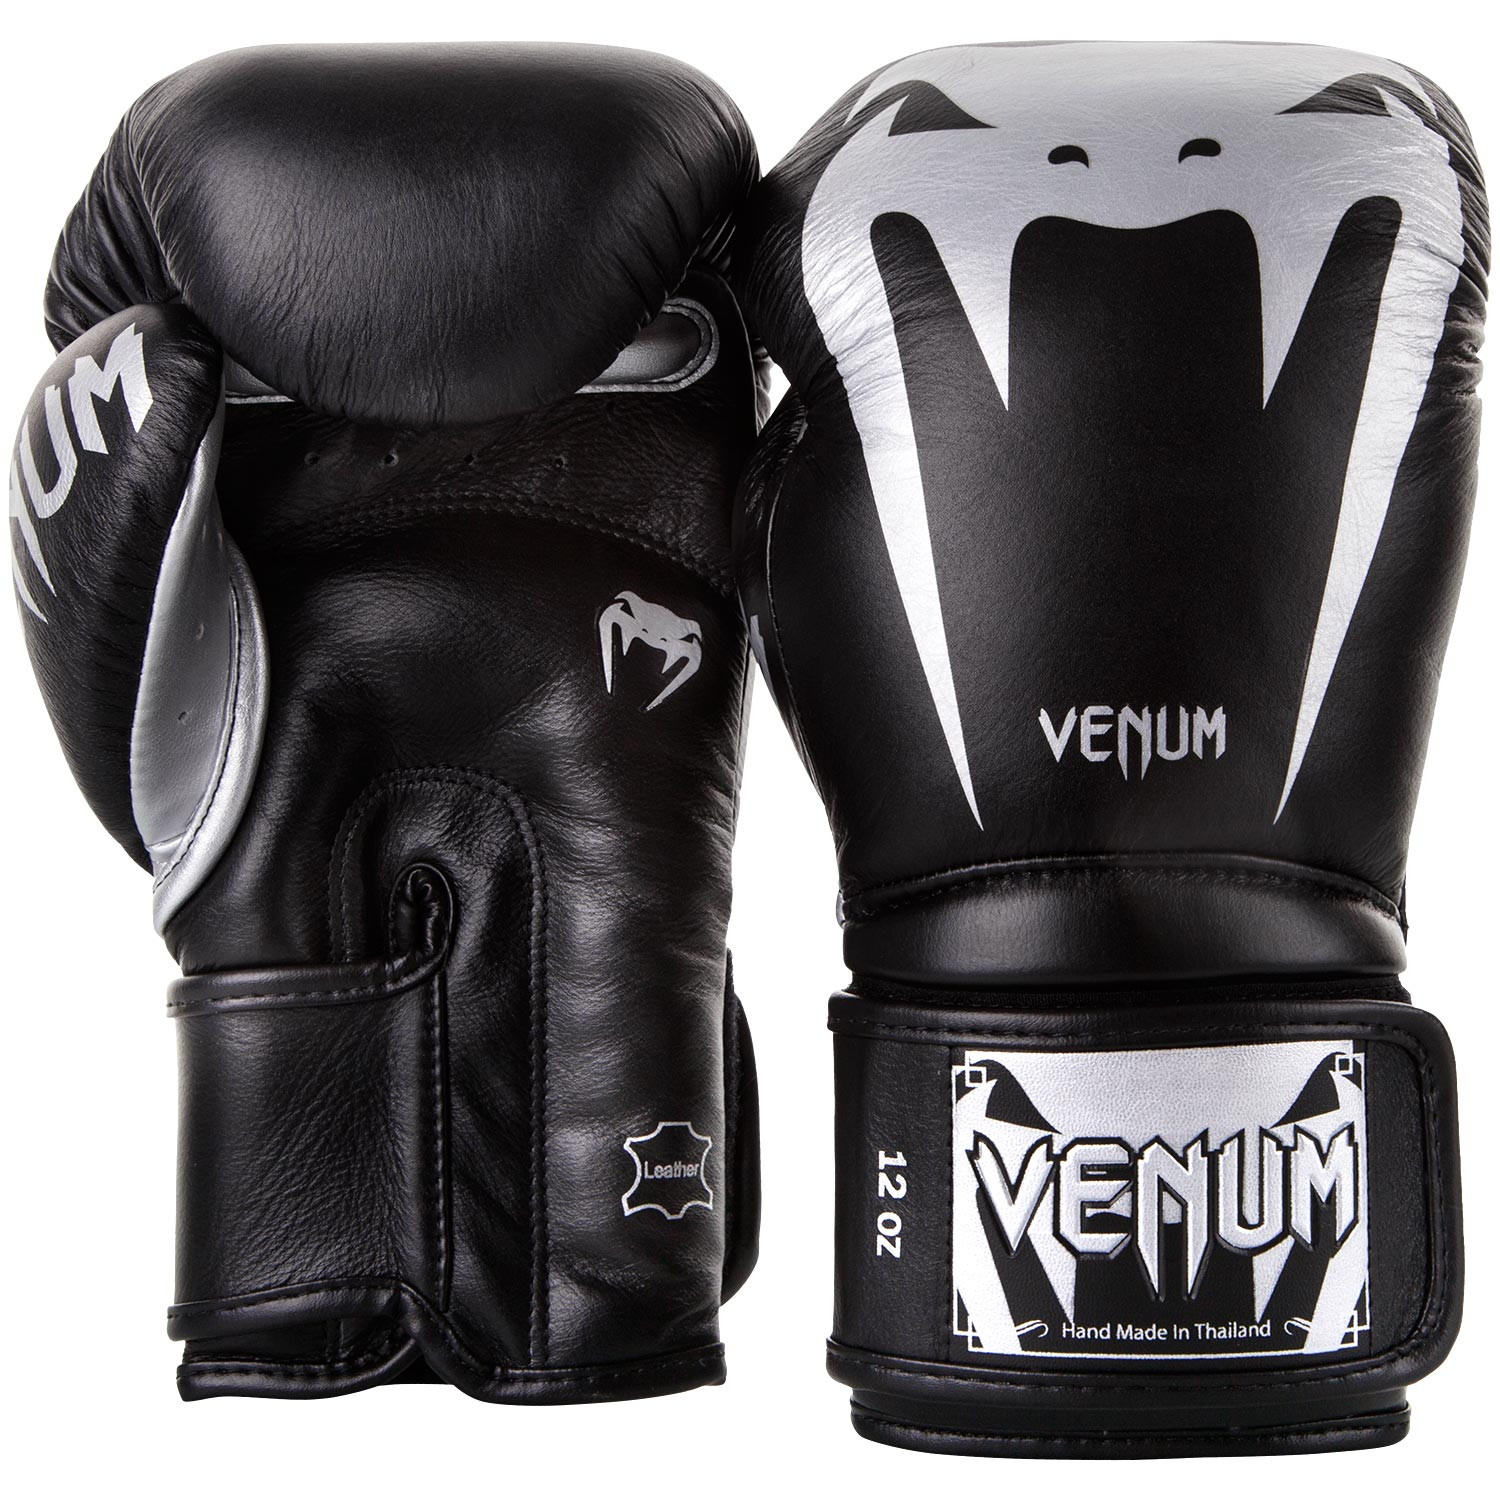 Champion Kuwait|Product|VENUM GIANT 3 0 BOXING GLOVES BLACK